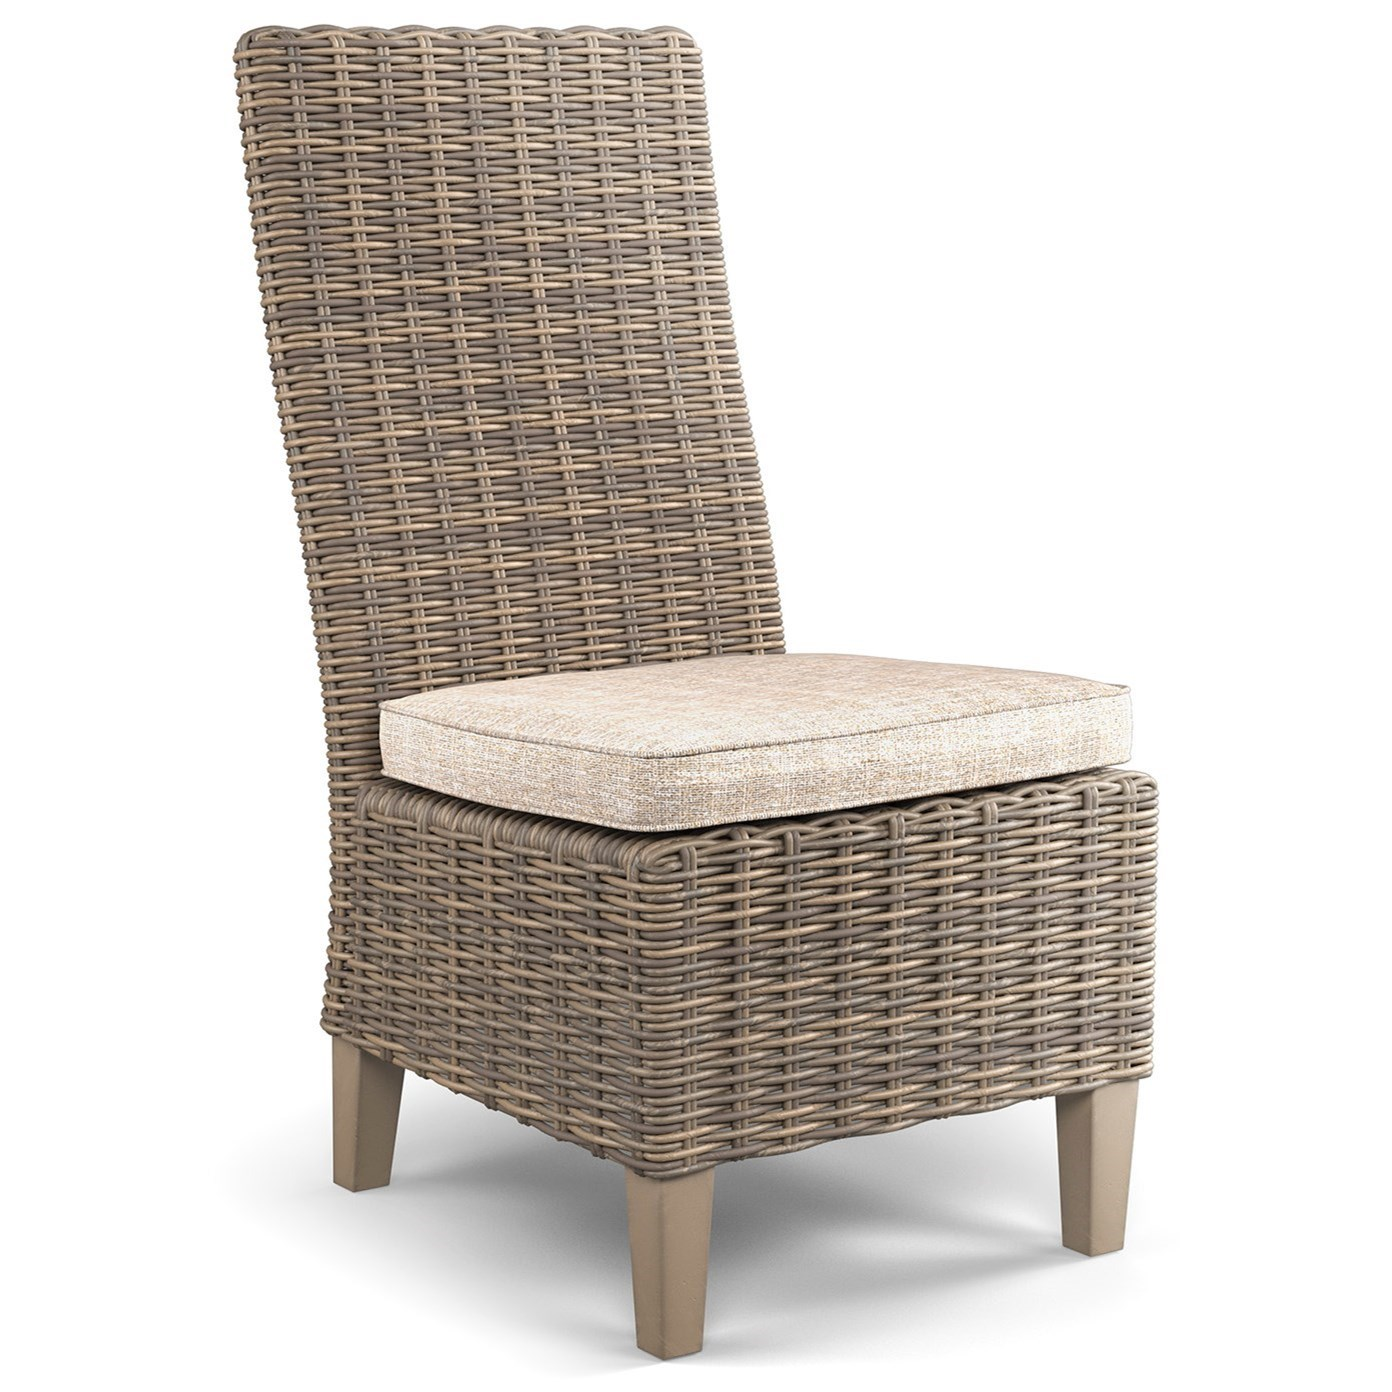 Beachcroft Set of 2 Side Chairs with Cushion by Signature Design by Ashley at Lapeer Furniture & Mattress Center